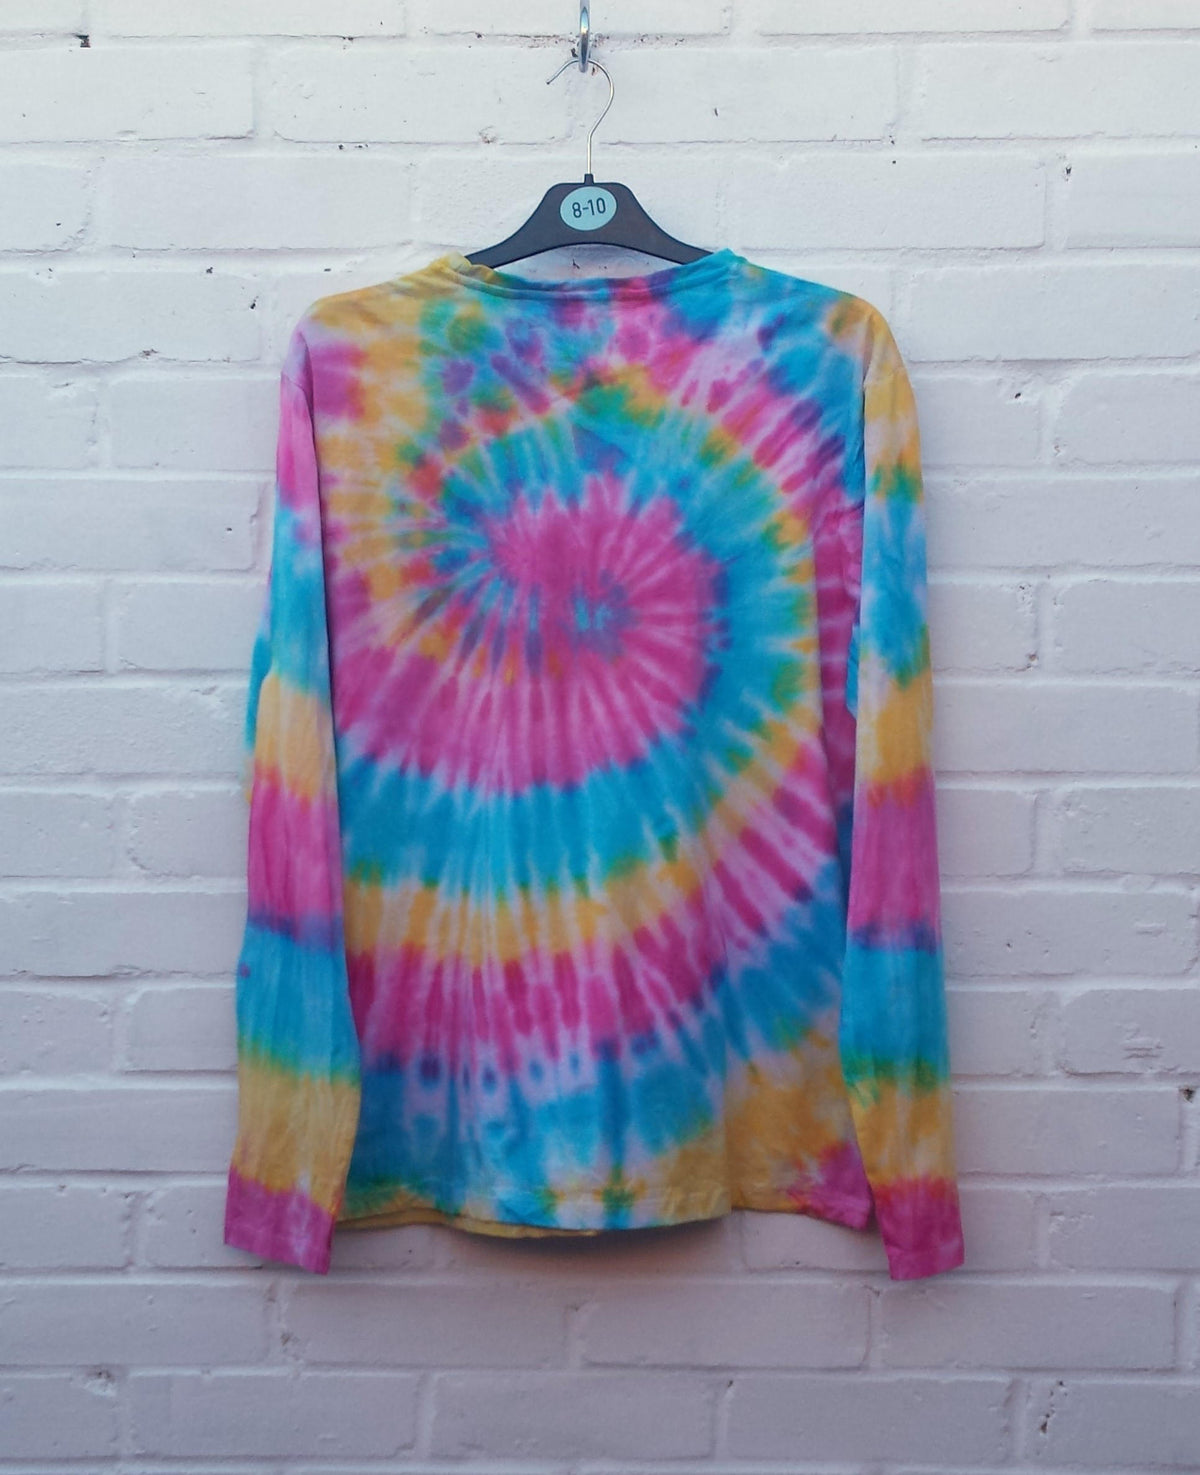 Tie Dye Sweater Mens Jumper Rainbow ALL SIZES Long Sleeve Tee Hippie Pride LGBT Festival Clothing Top Summer Finds